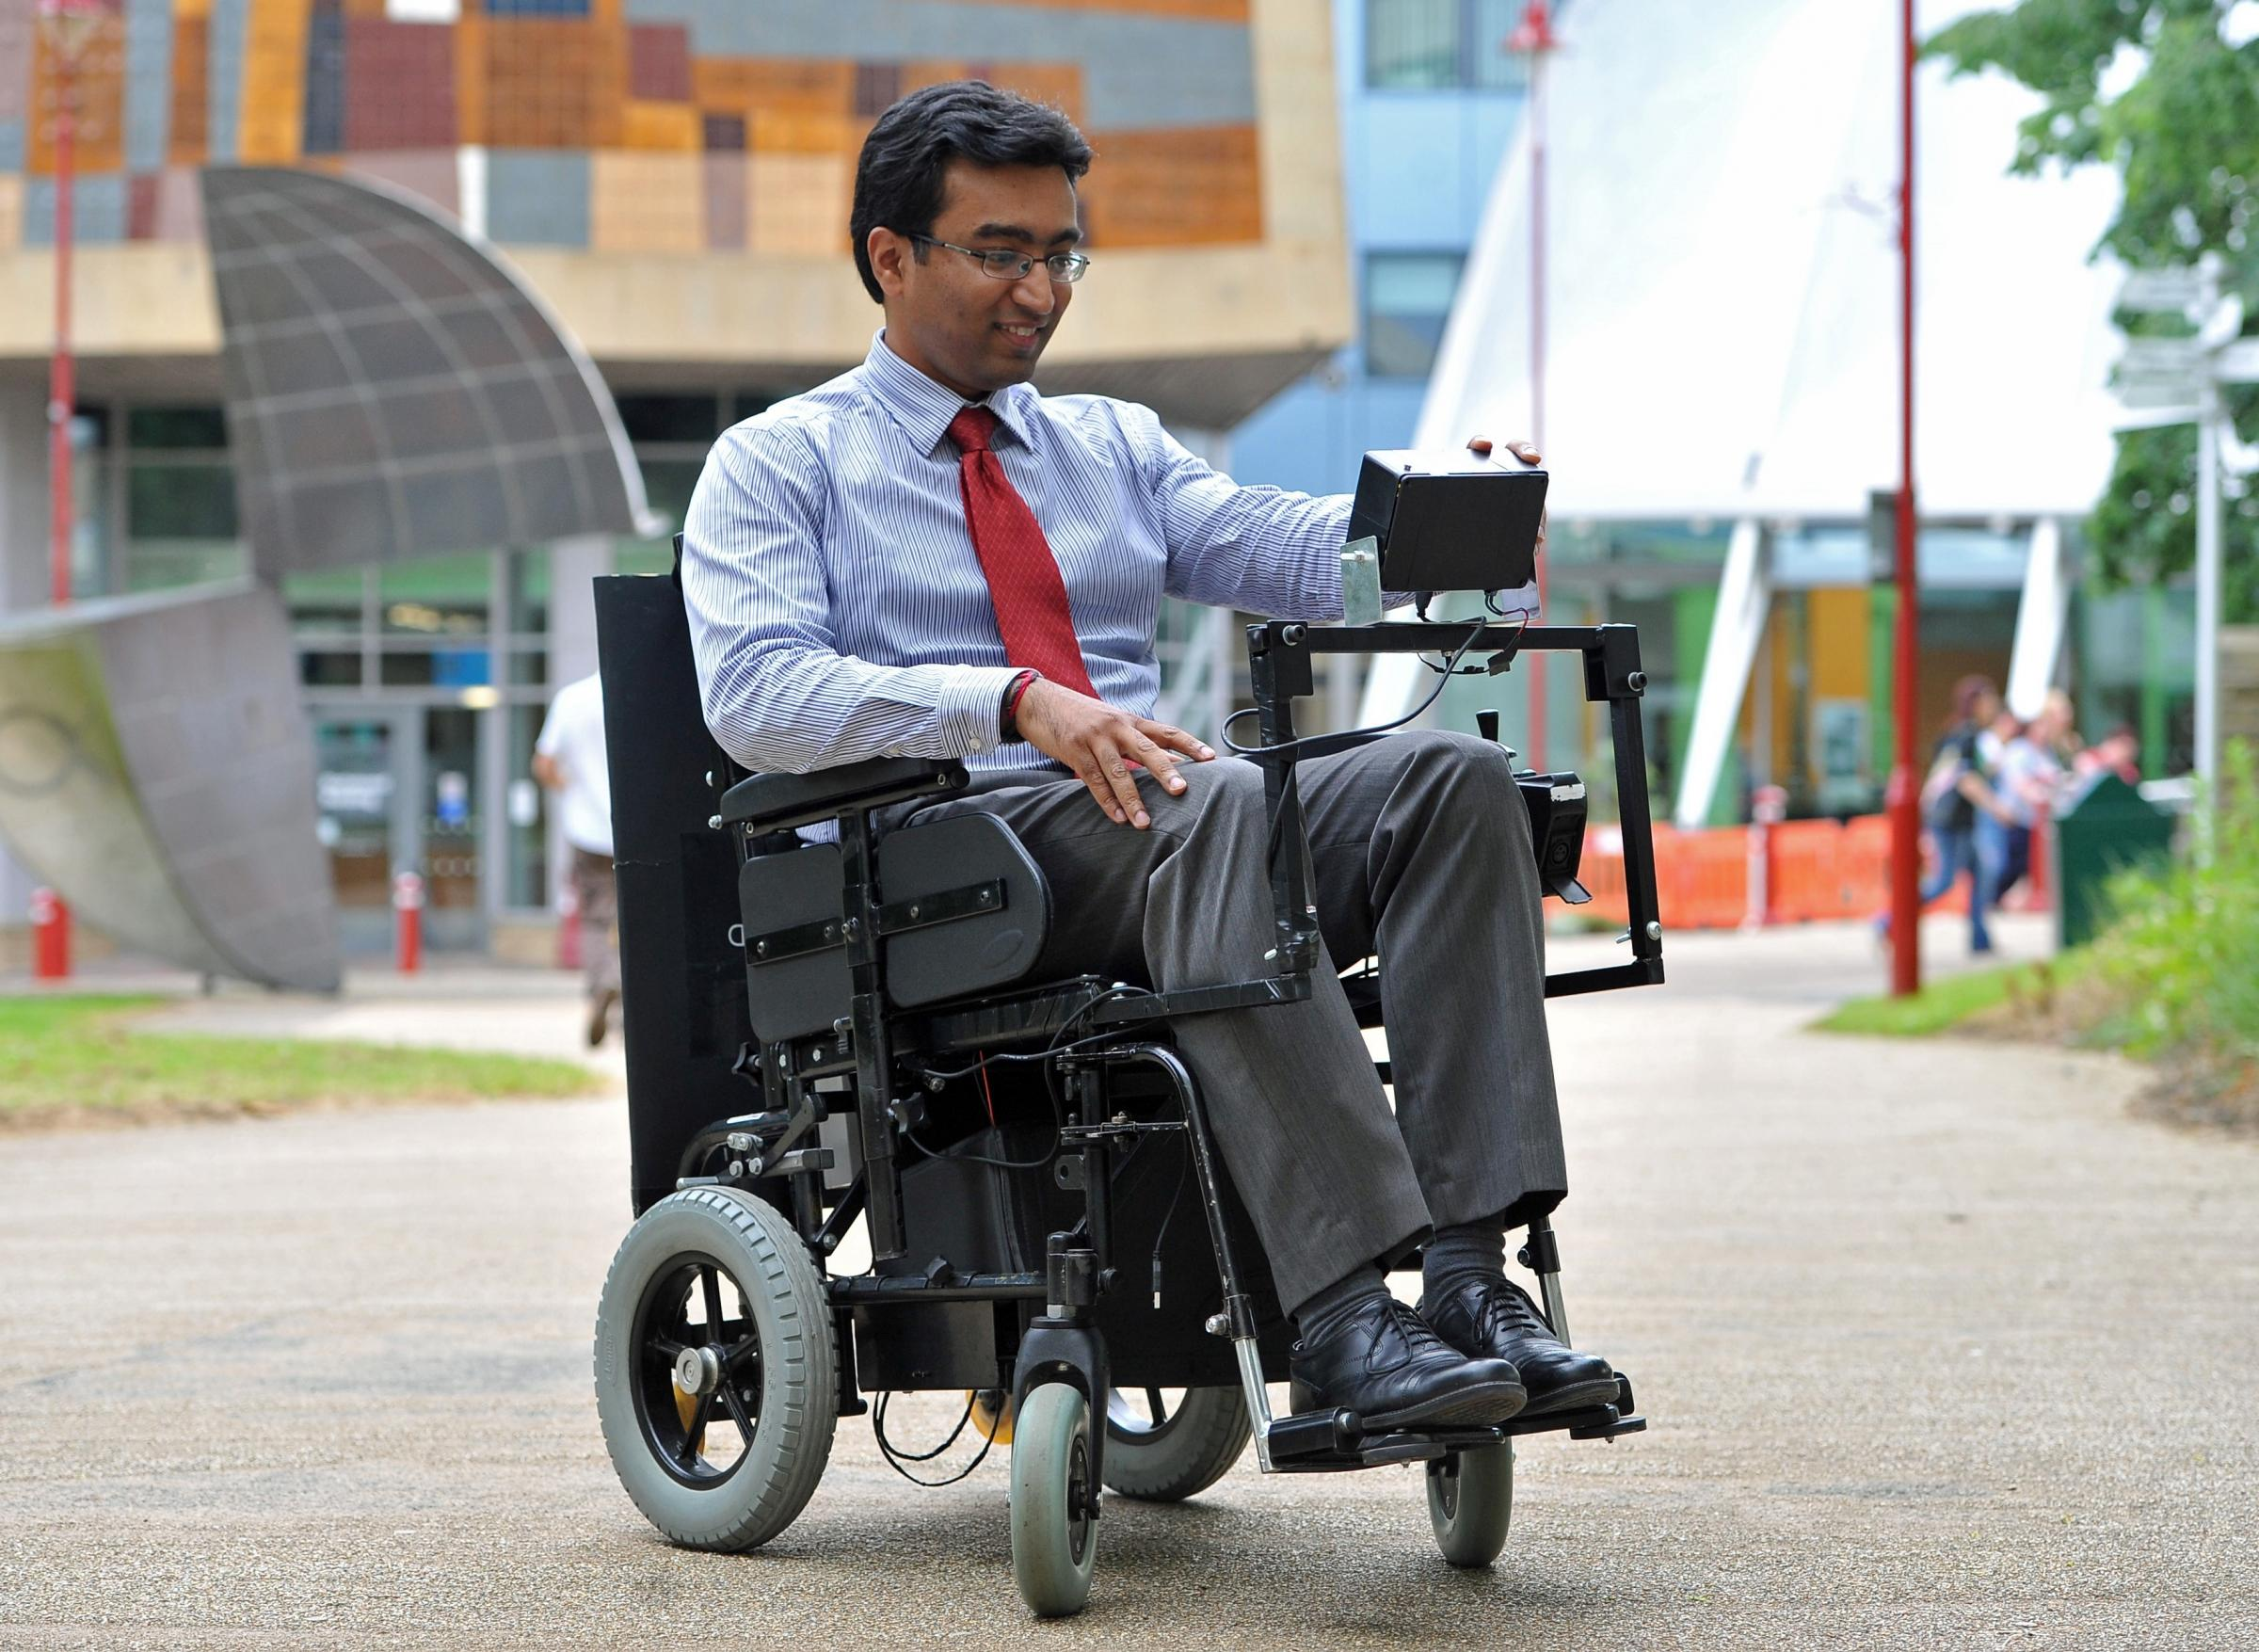 Dr Prashant Pillai takes a closer look at the device that allows the wheelchair to be moved by eye movement.